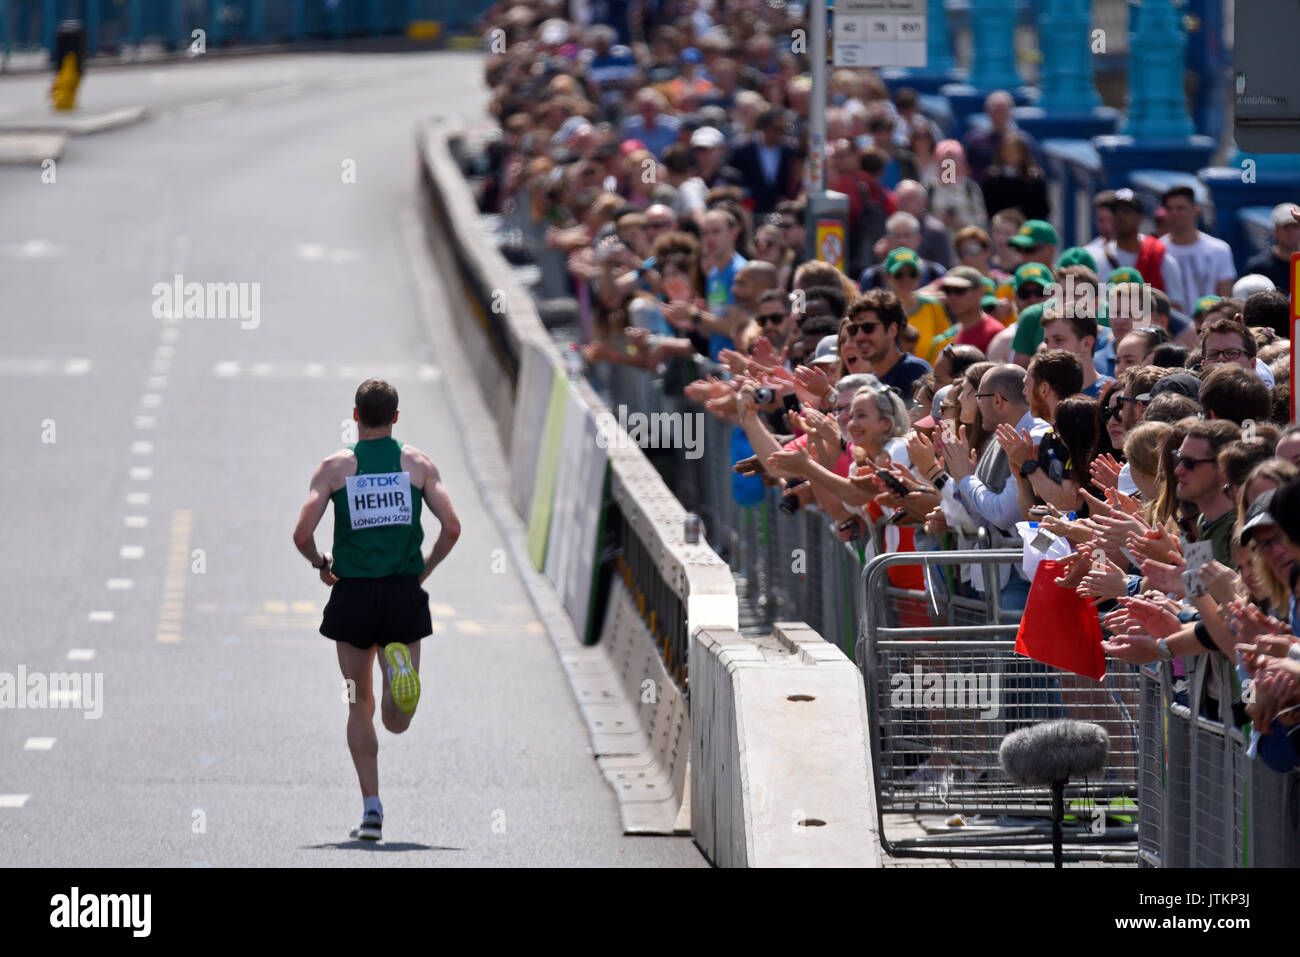 Sean Hehir of Ireland heading towards the finish line on Tower Bridge during the World Championships Marathon 2017 in London. Crowds. Space for copy - Stock Image